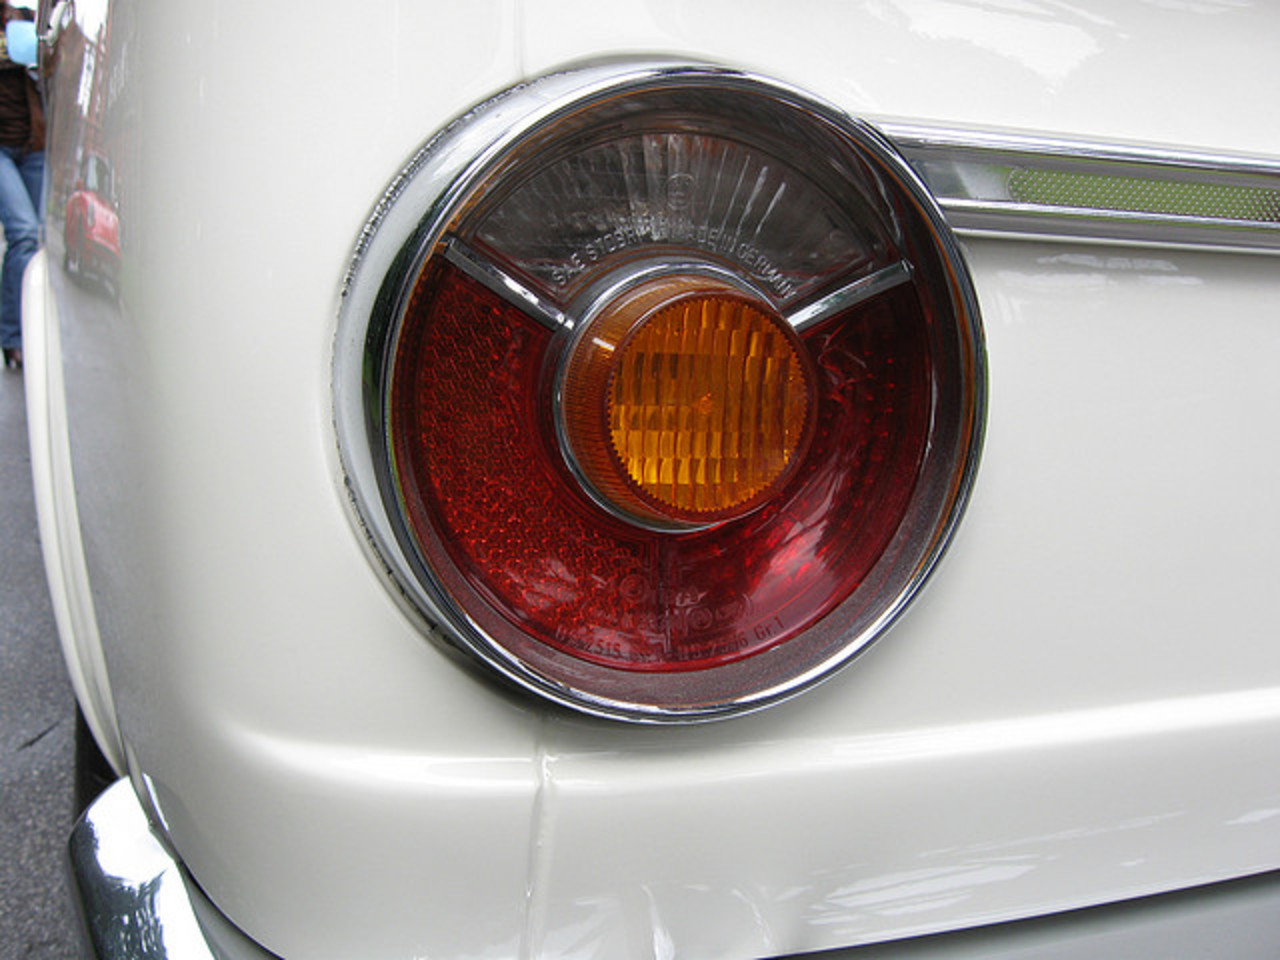 Flickr: The Left rear lights Pool